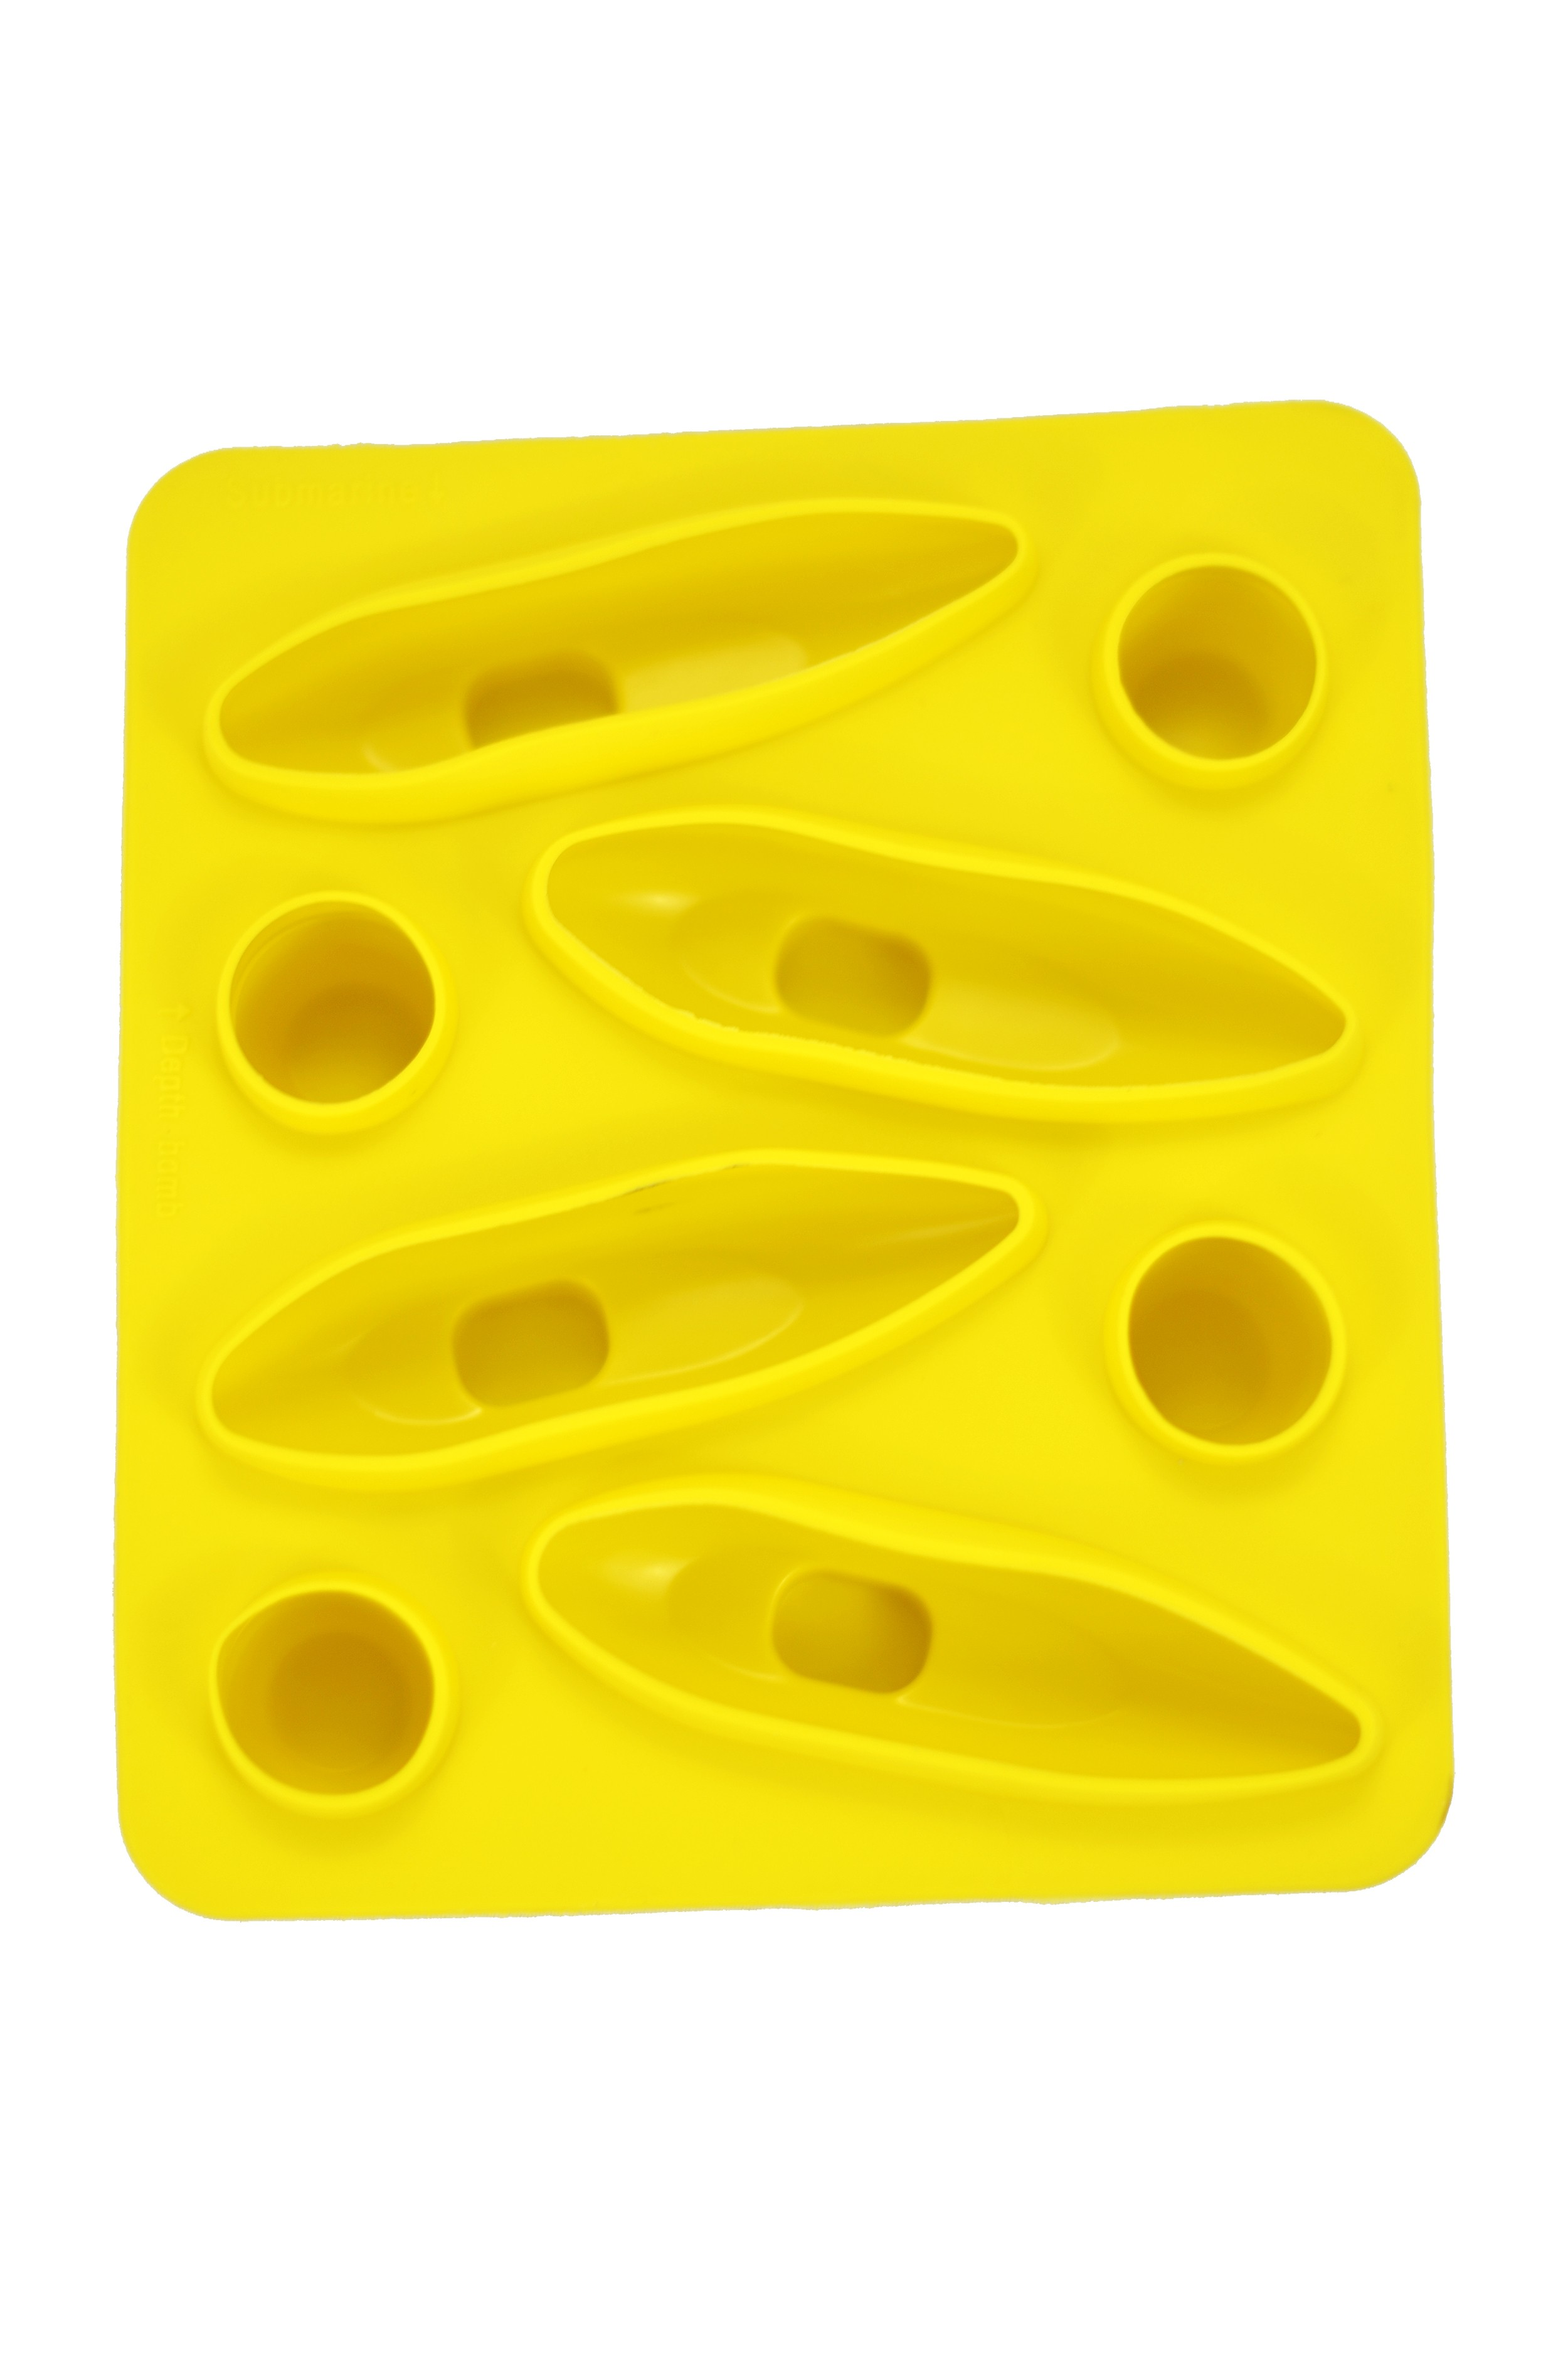 Submarine Ice Cube Tray Main 2500